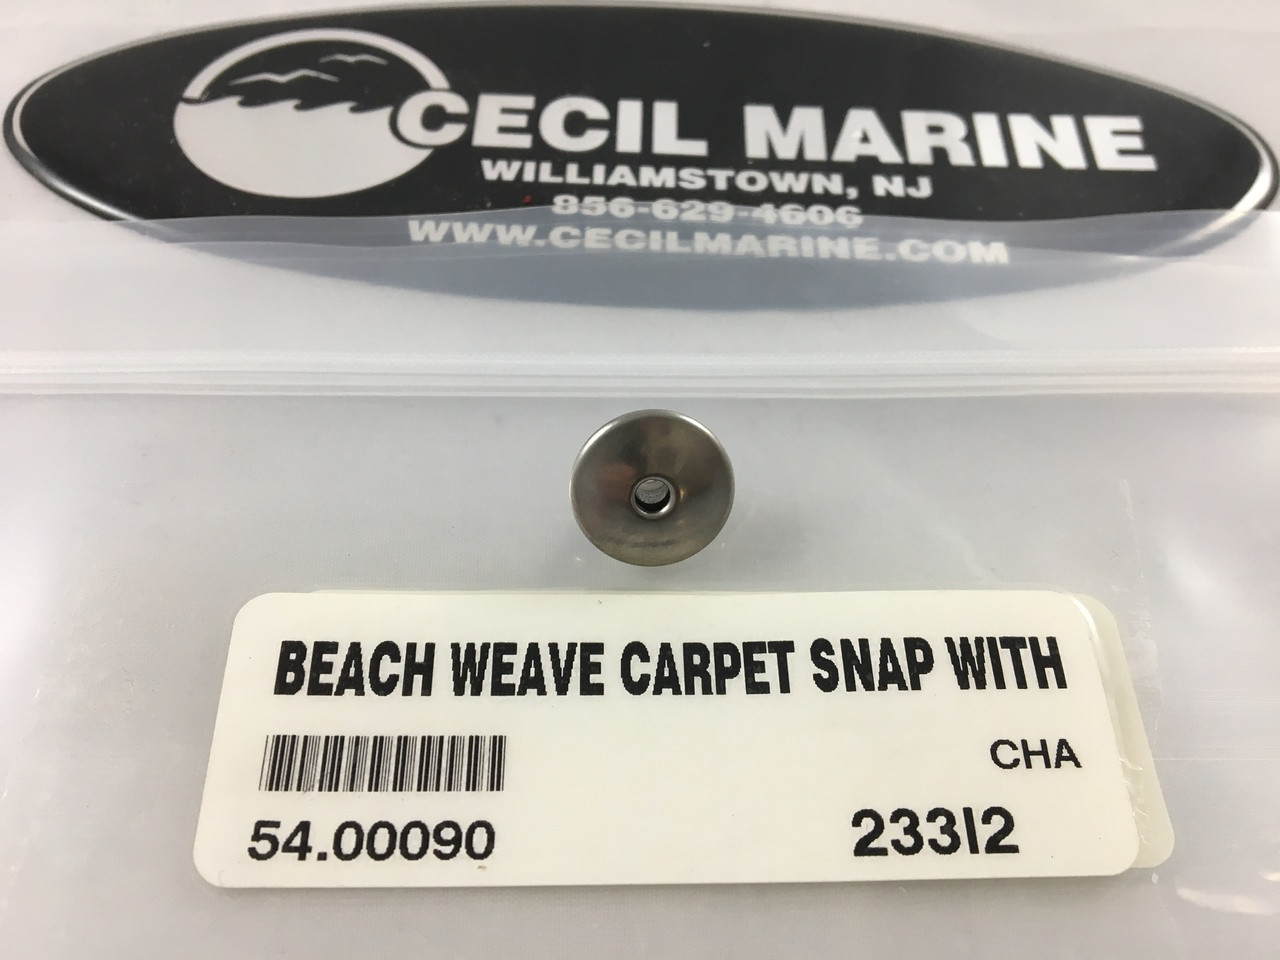 BEACH WEAVE CARPET SNAP WITH CENTER HOLE - 10 SNAPS PER BAG - 54.00090